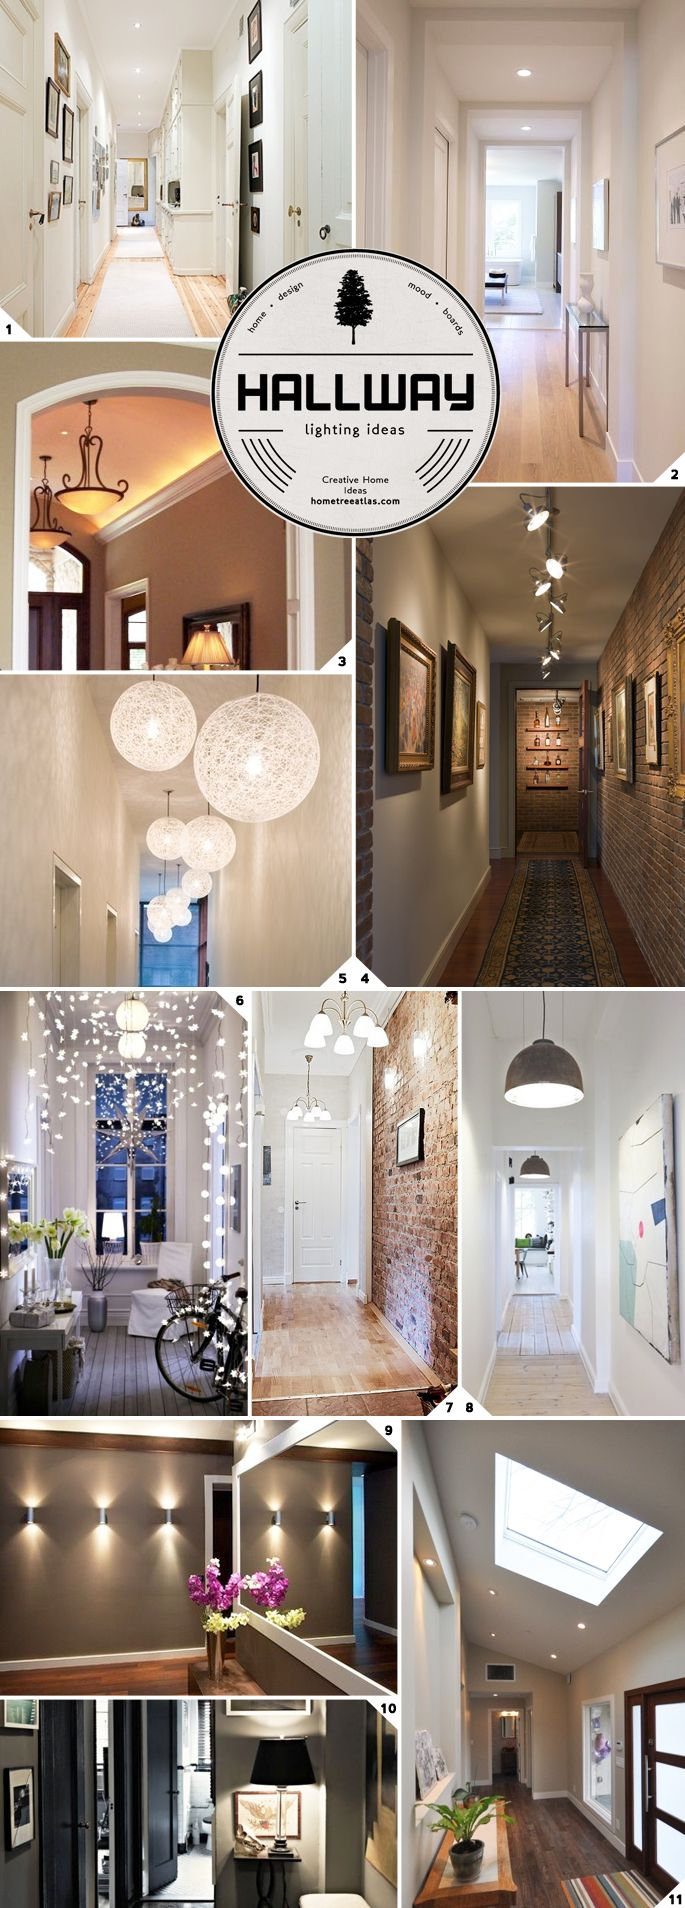 Hallway Lighting Ideas & Leave No Space Dark: Hallway Lighting Ideas | Home Lighting Ideas ...